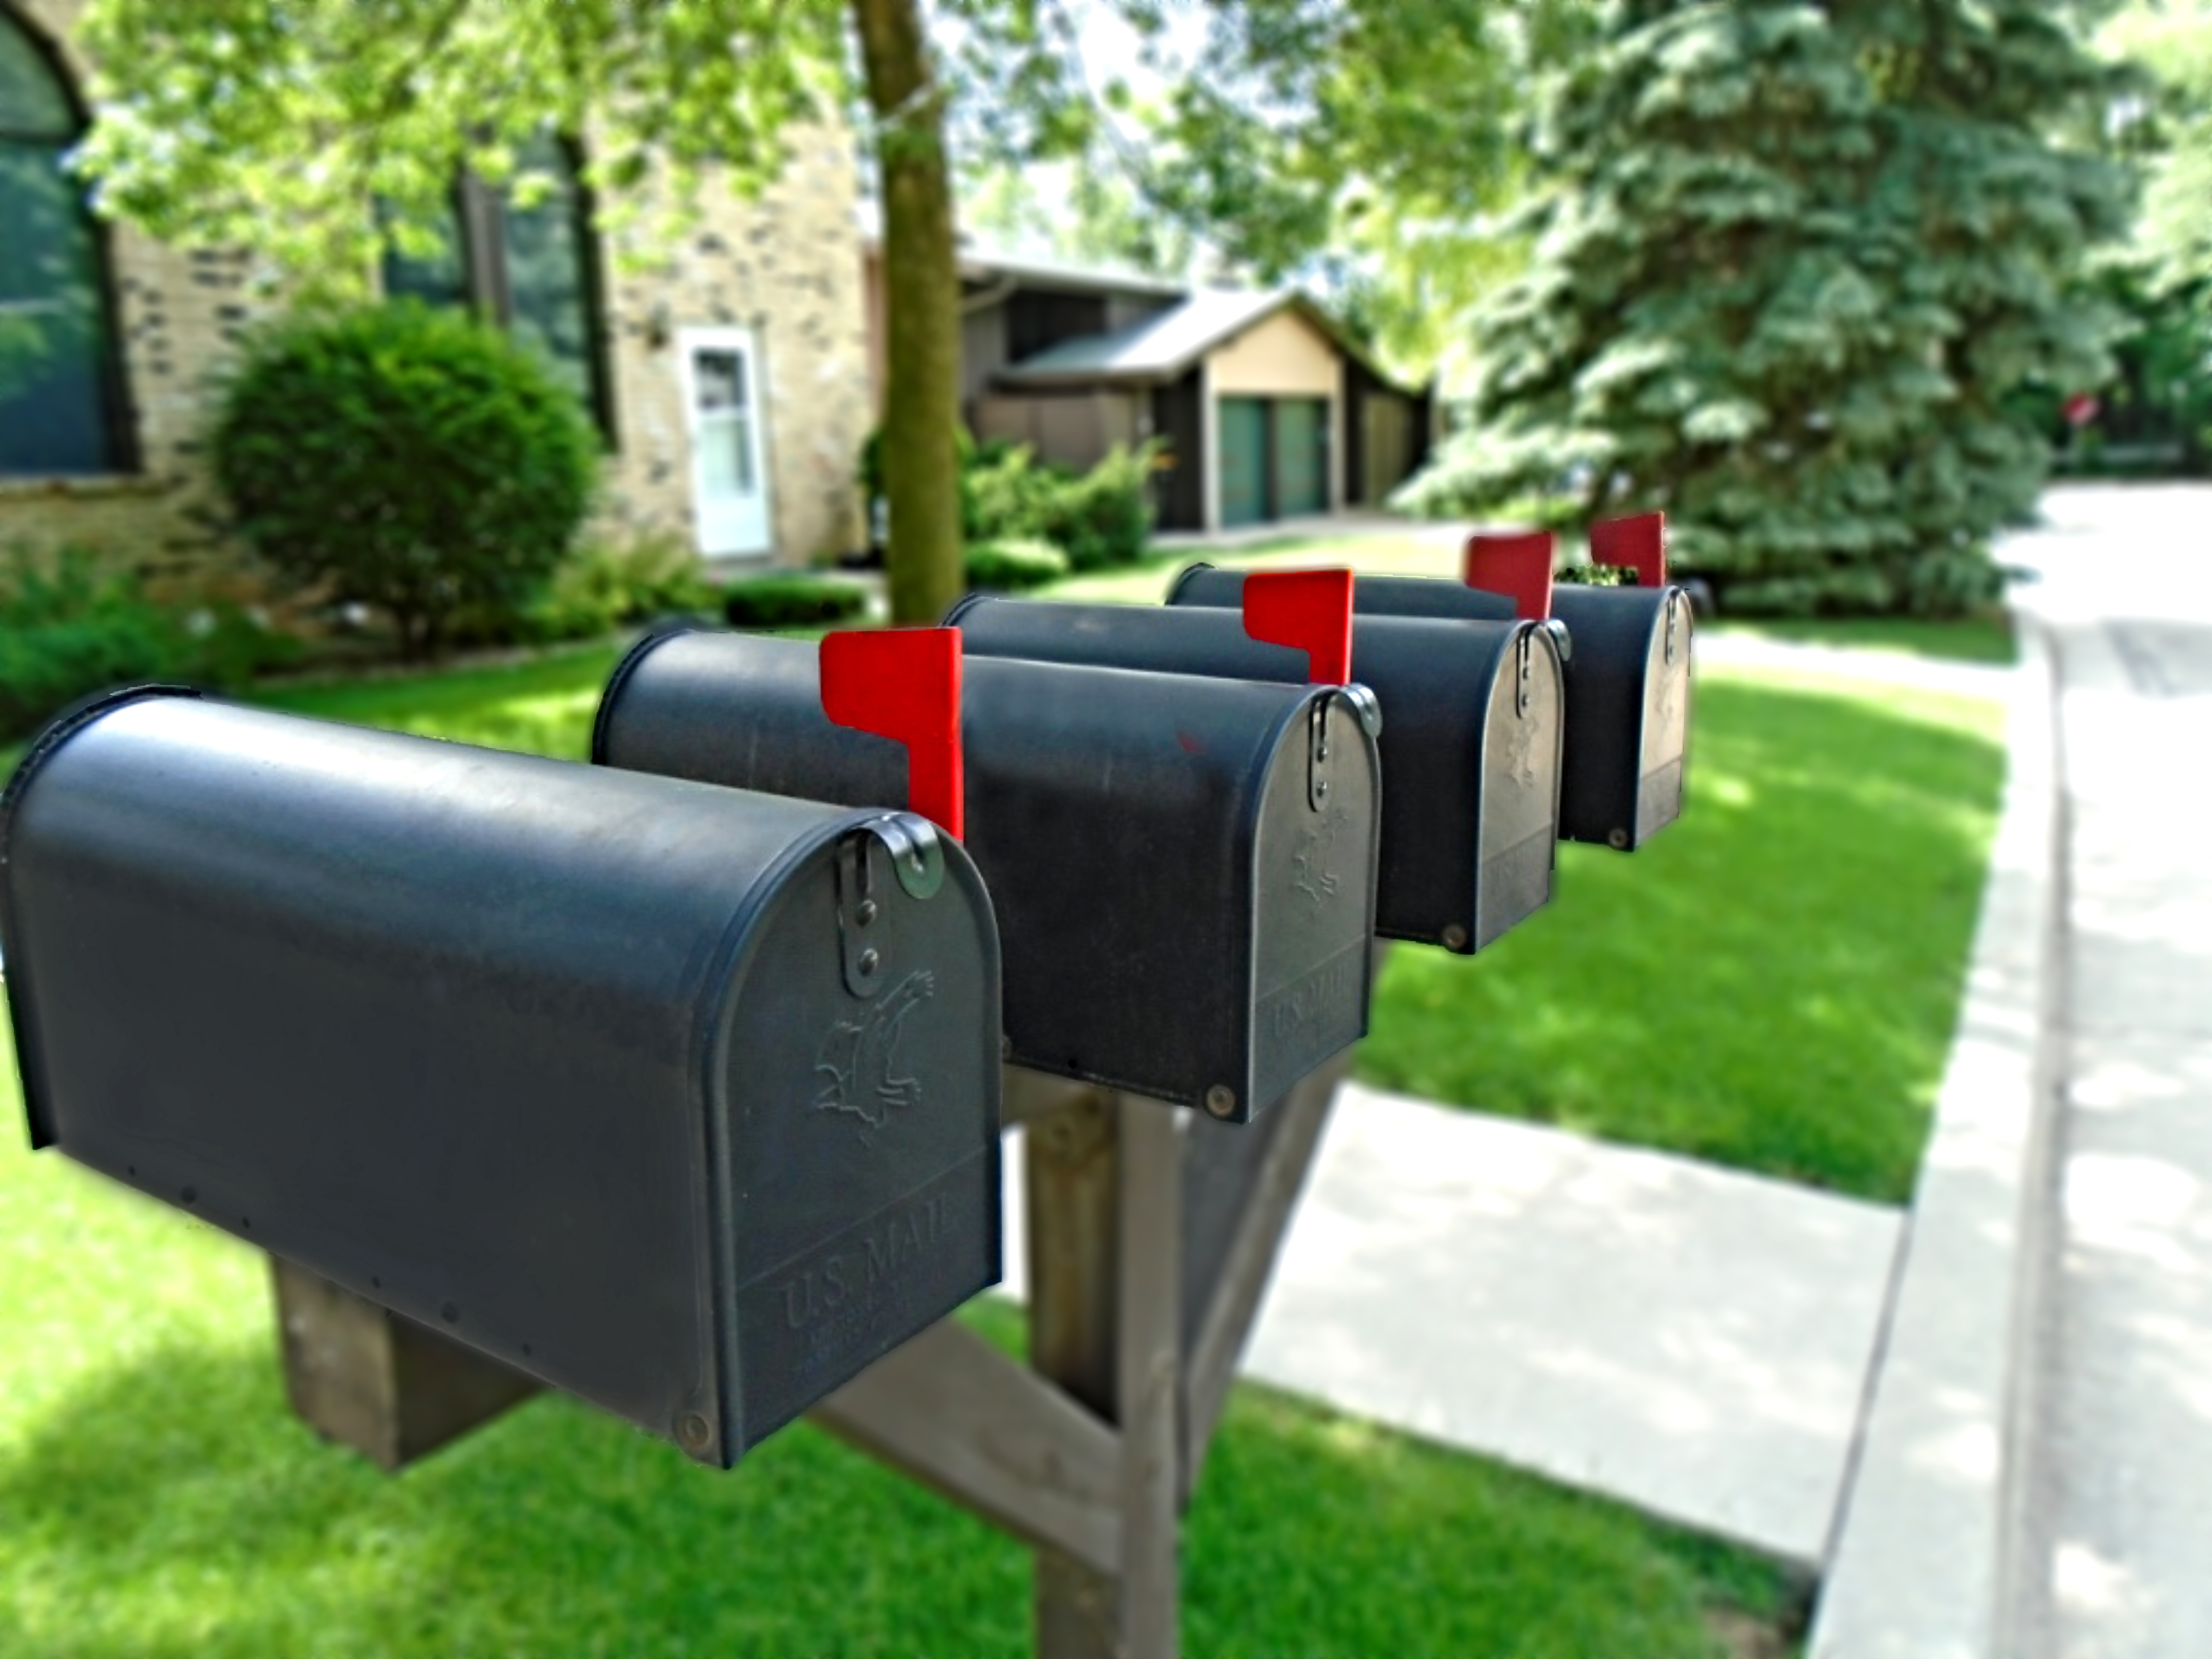 Order Saturation Mailing